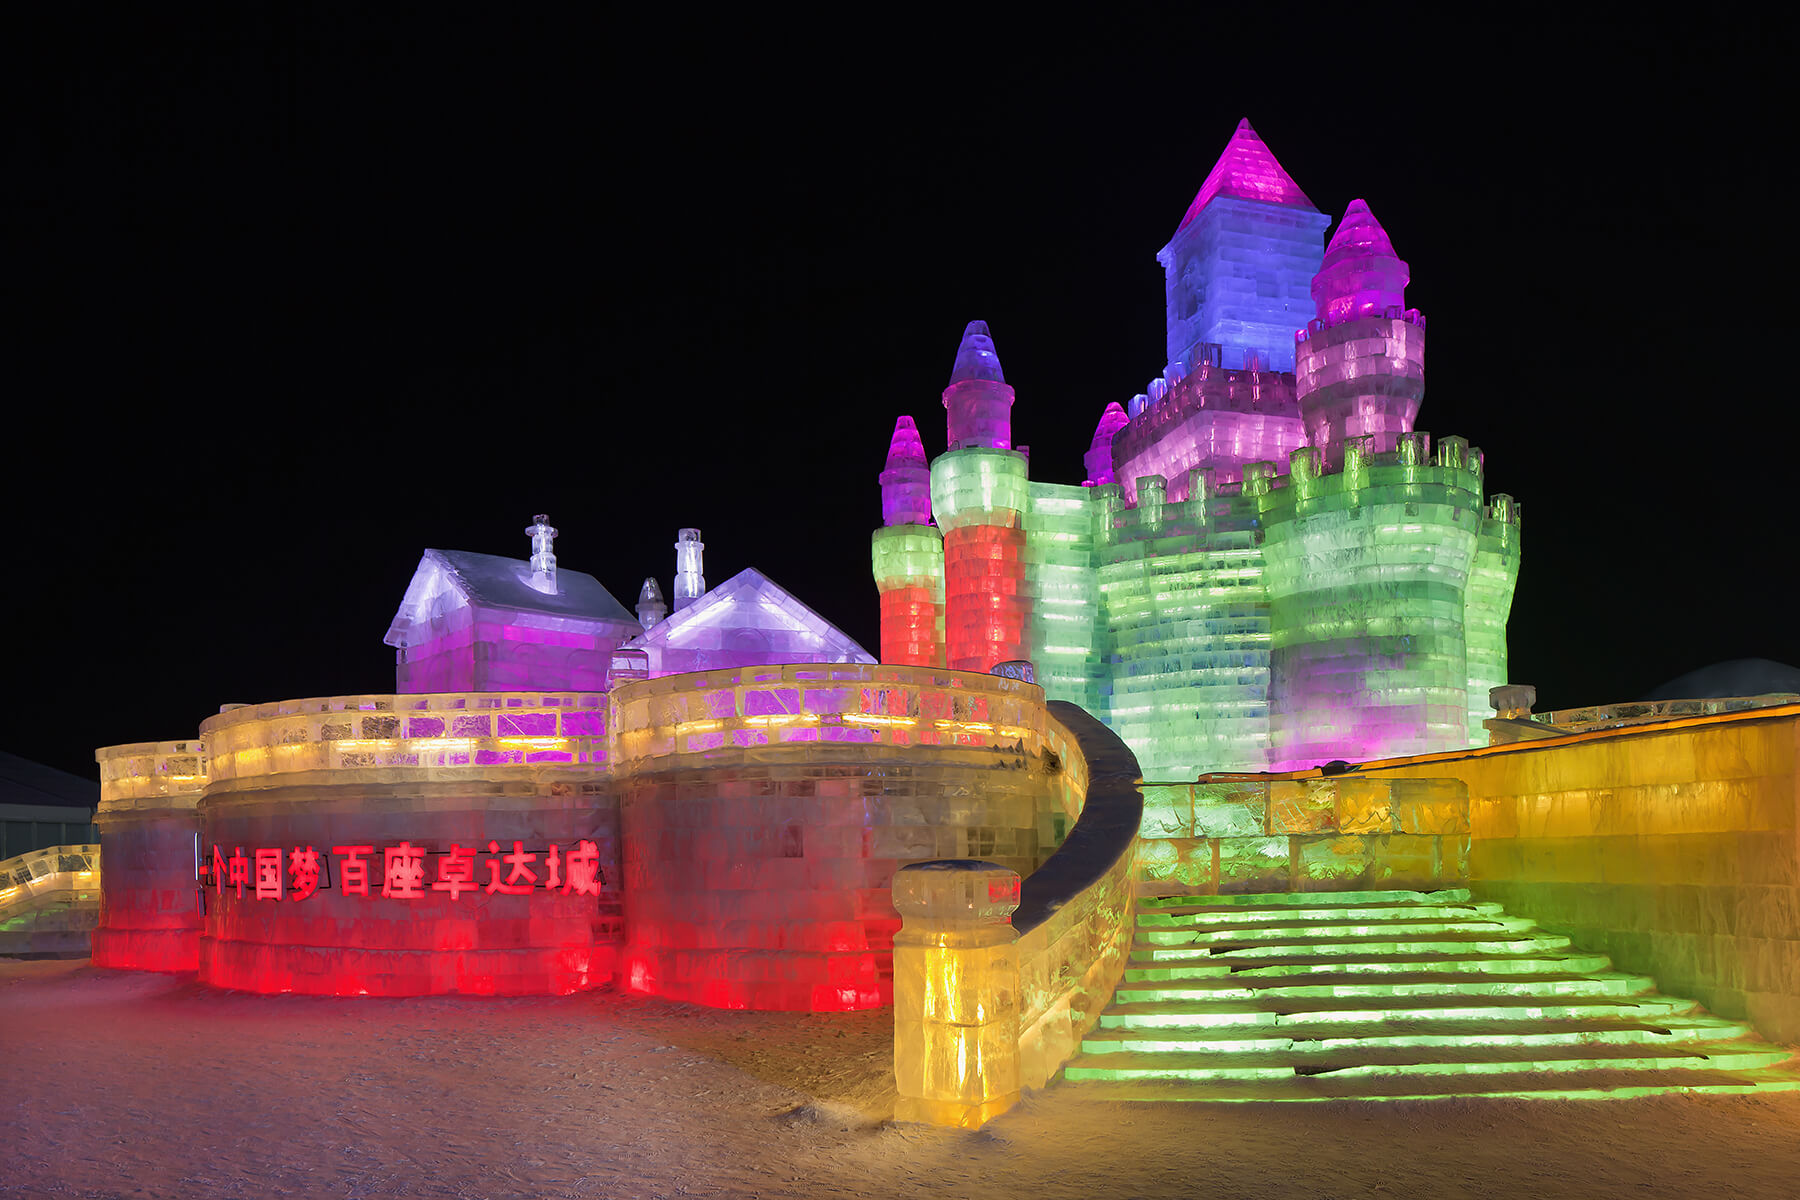 Harbin, China - February 13, 2015: The International Ice and Snow Sculpture Festival. During the event, 800,000 visitors descend on the city, with 90% from China, this is one of the country's top winter destinations.